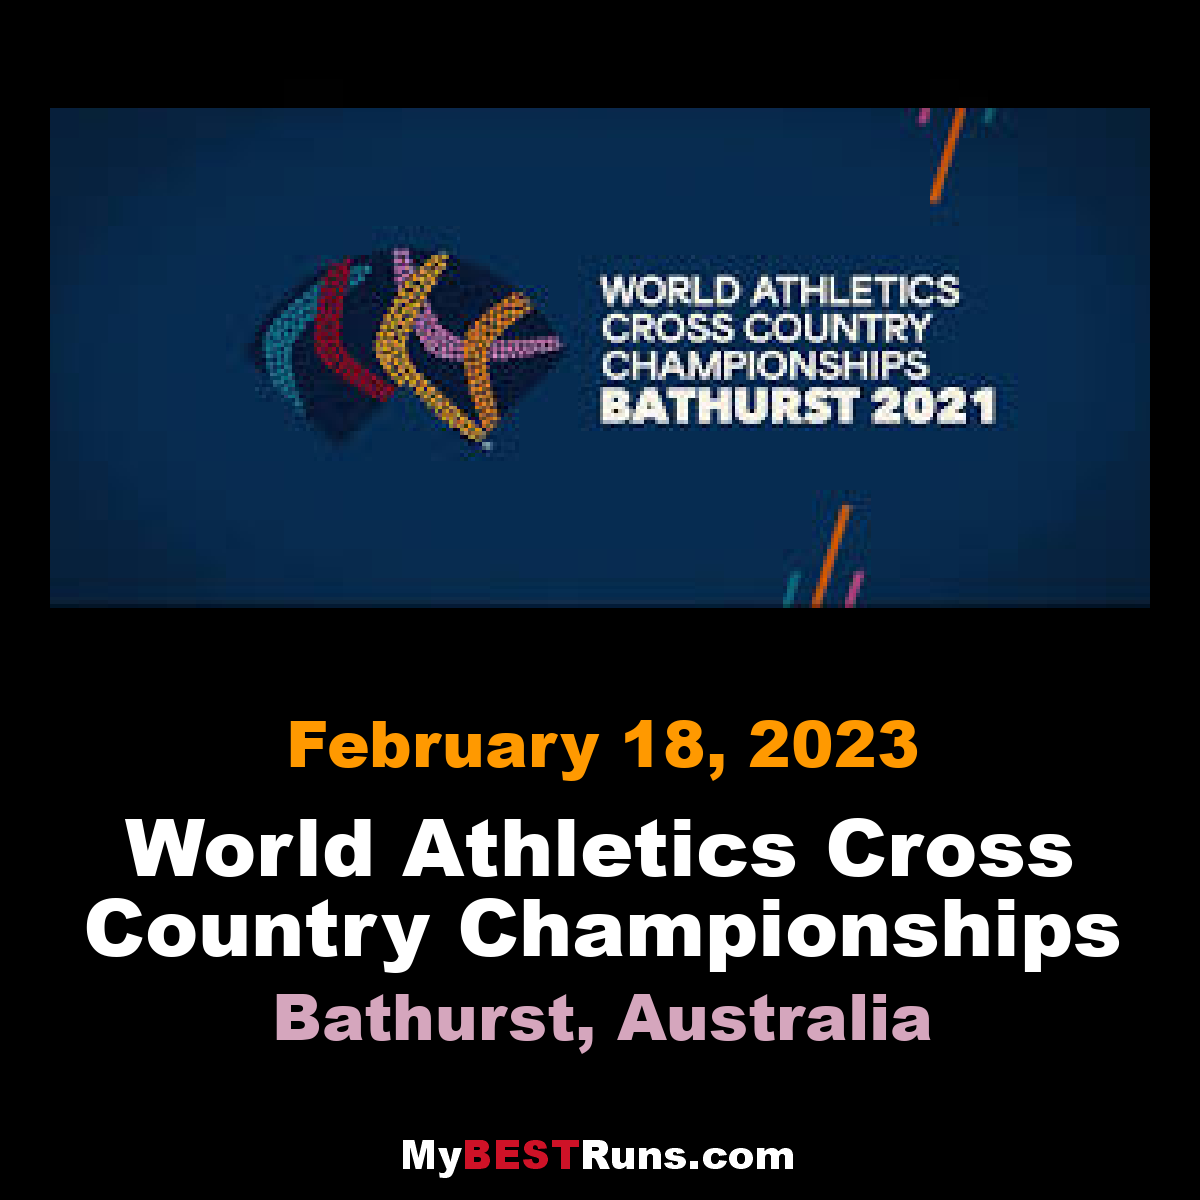 World Athletics Cross Country Championships